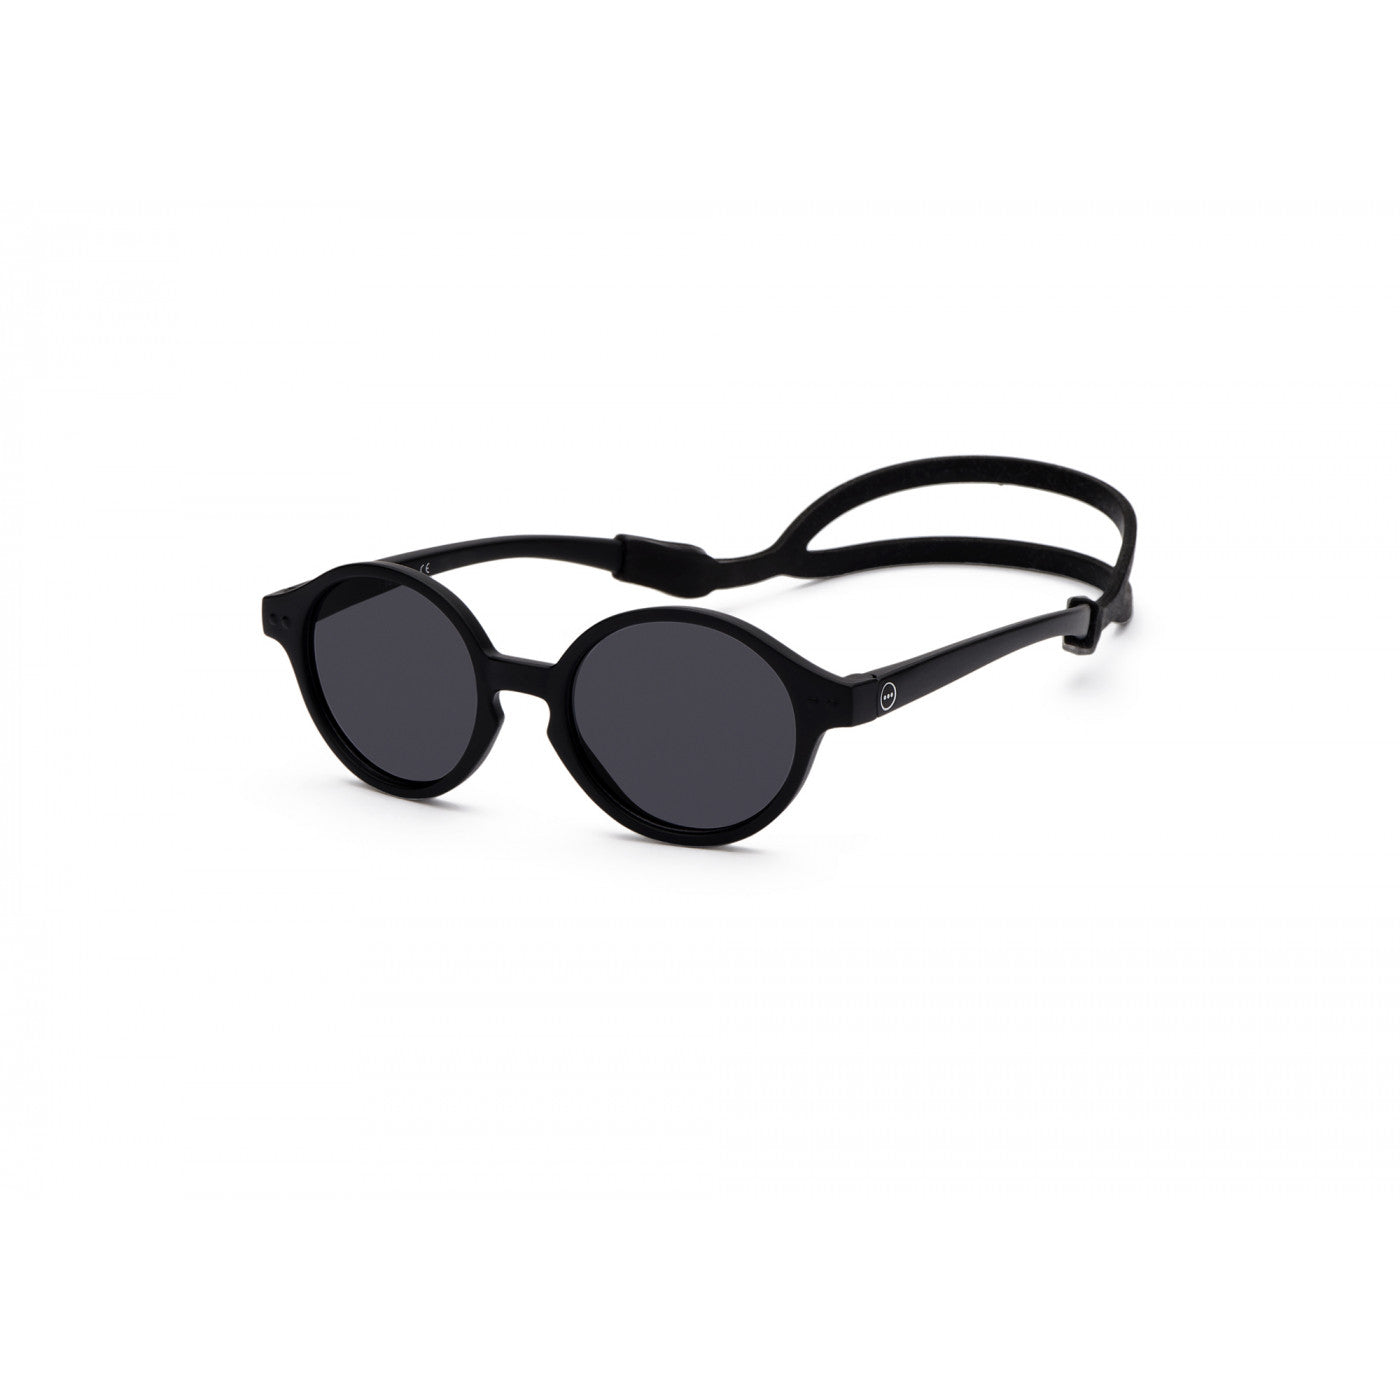 SUN KIDS BABY SUNGLASSES / 12-36 MONTHS / BLACK